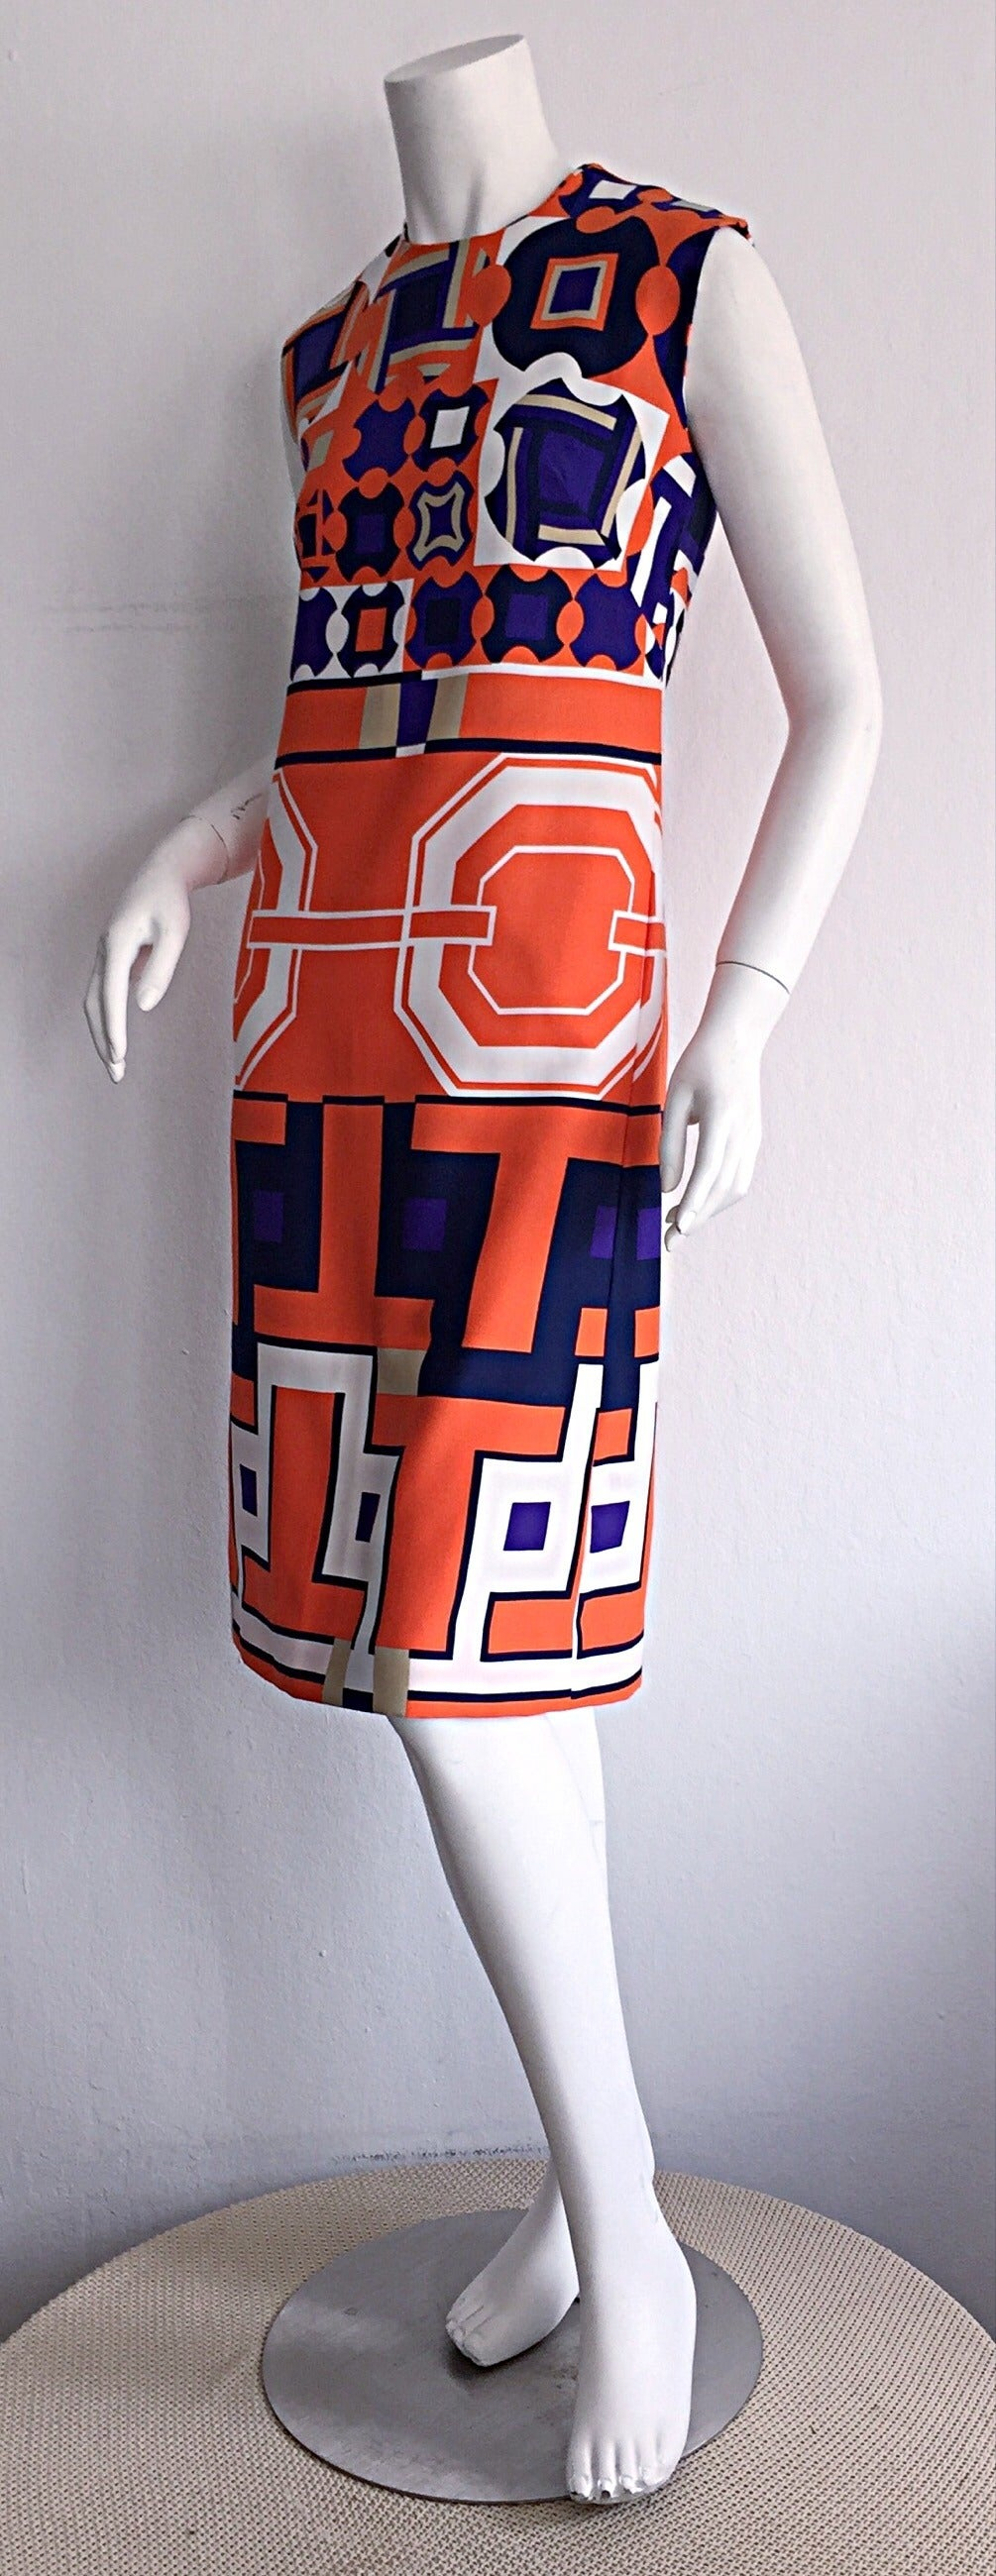 1960s Vintage Lanvin Op - Art Geometric Mod ' Buckle ' Print Shift 3 - D Dress 6